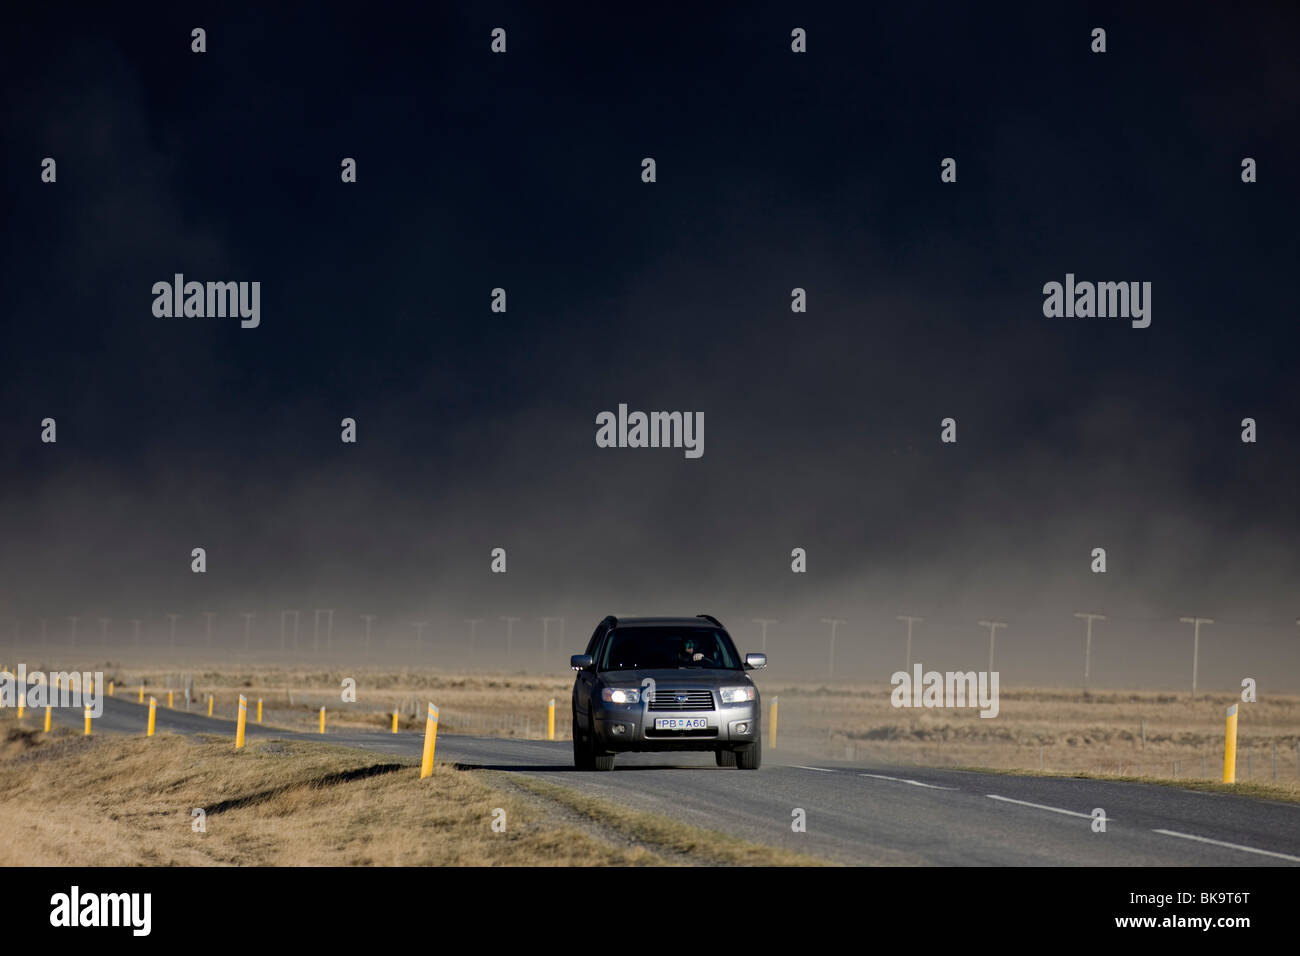 Black clouds of volcanic ash coming from the volcanic eruption in Eyjafjallajokull, Iceland - Stock Image